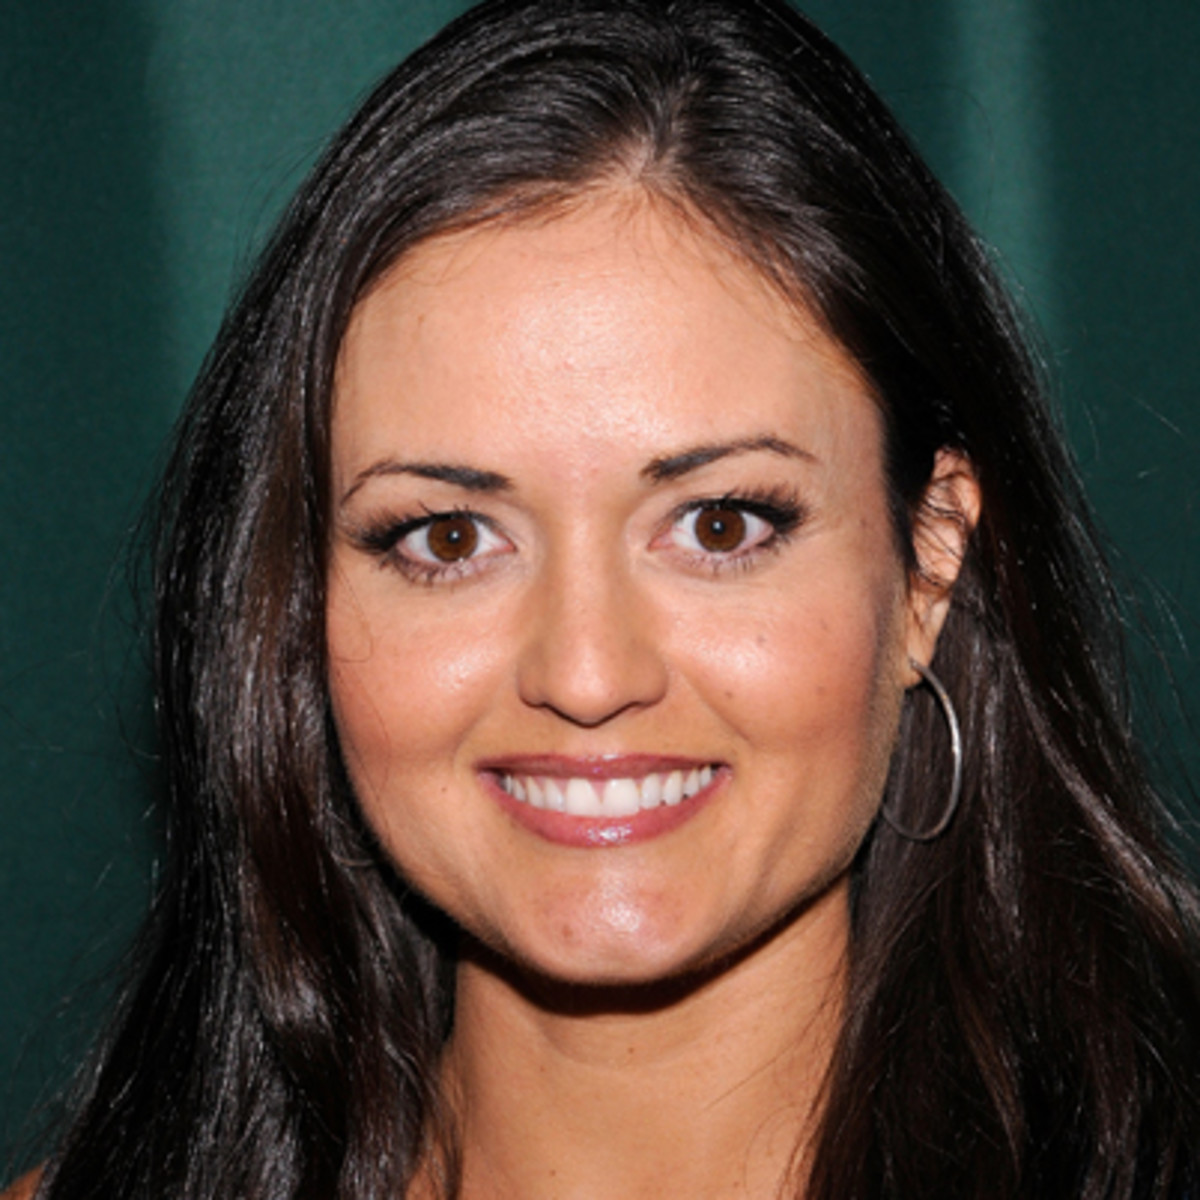 Danica McKellar - Age, Movies & Books - Biography